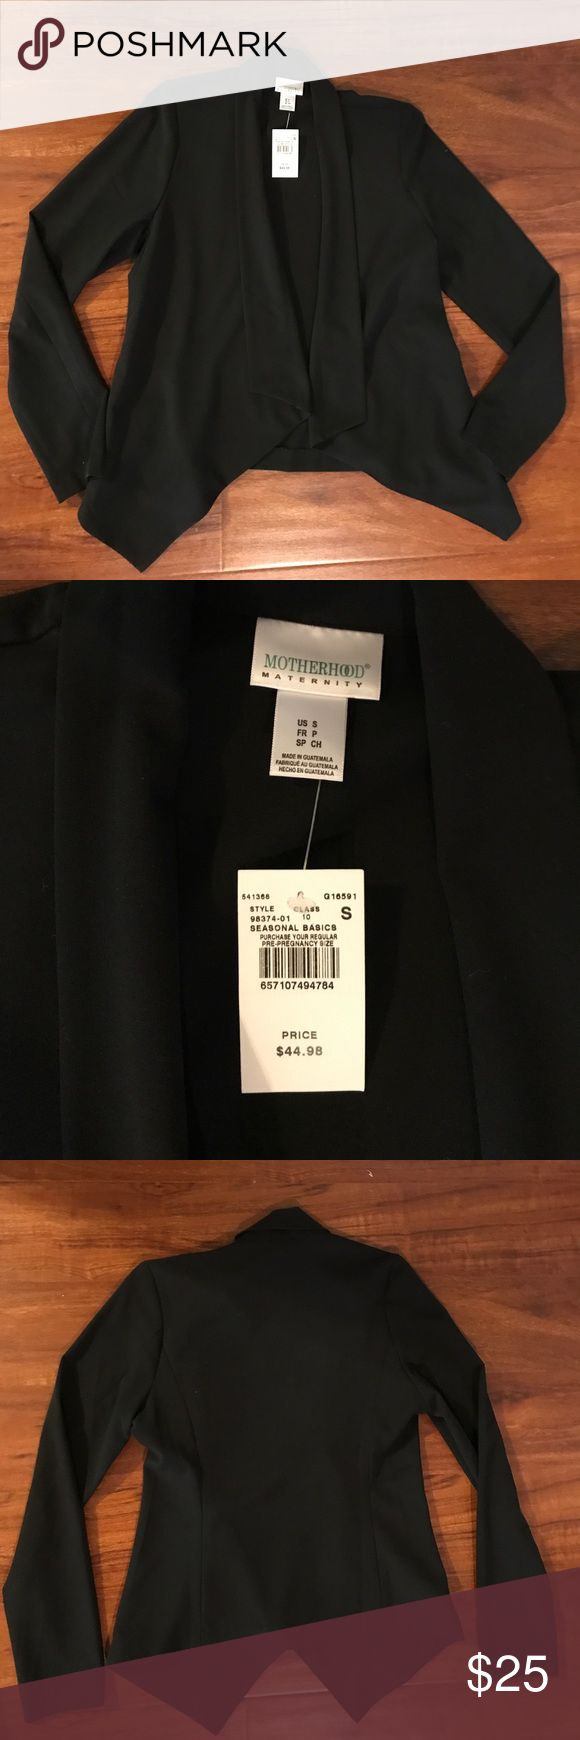 NWT motherhood maternity black work blazer Great black open front blazer. Looks great with jeans, dress pants, and skirts. Perfect for still trying to look professional while pregnant at work. New with tags. Motherhood Maternity Jackets & Coats Blazers